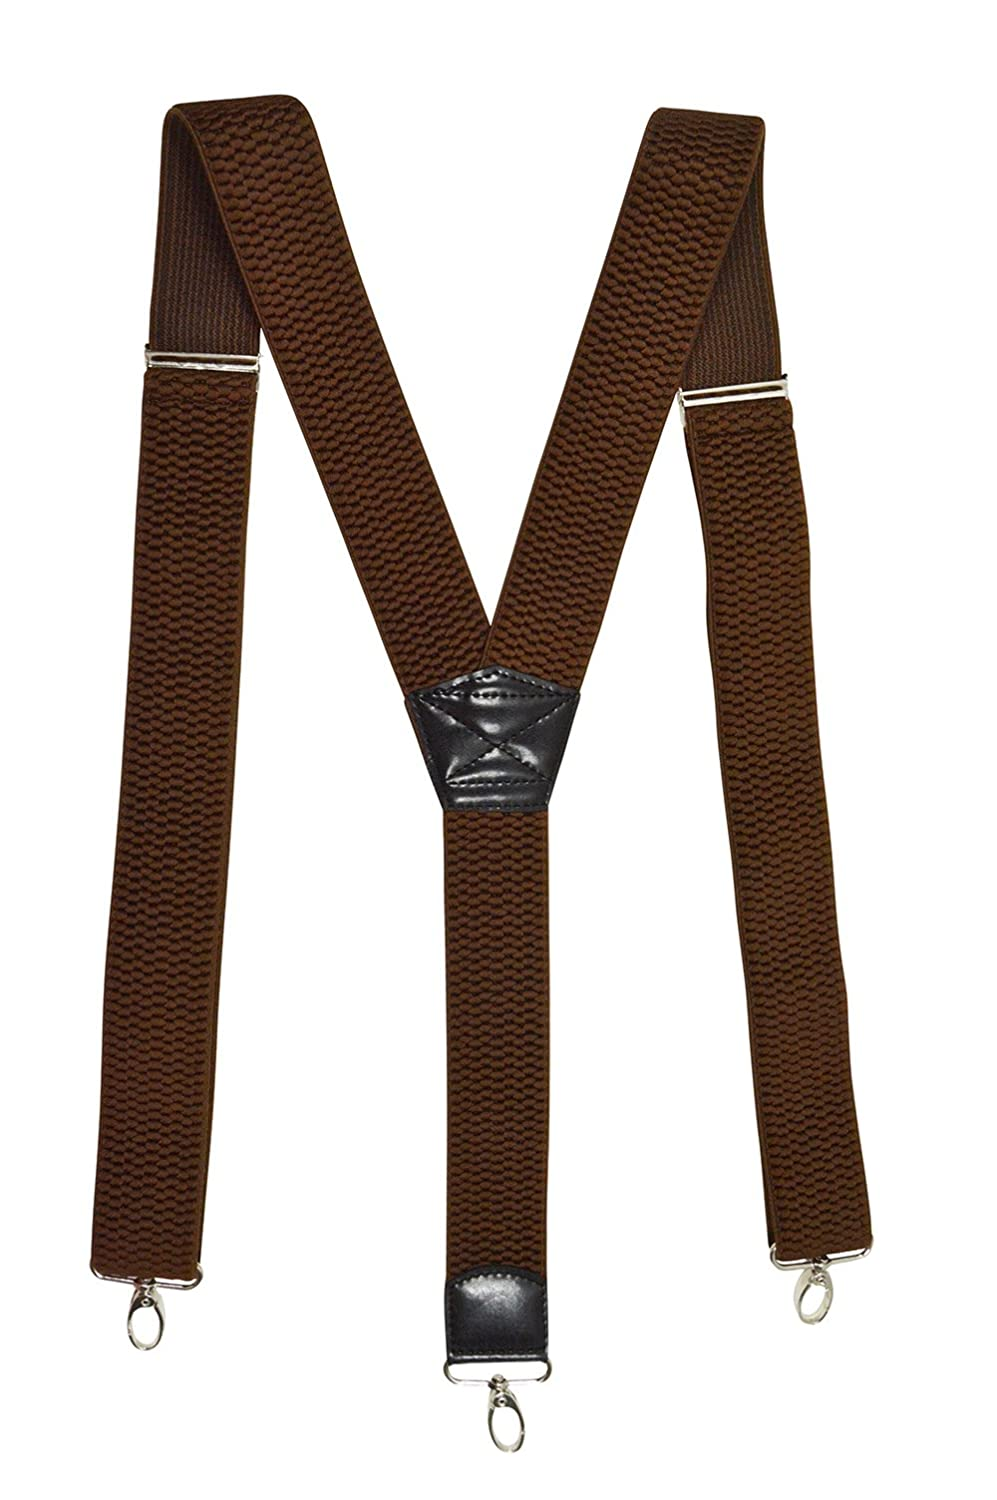 Heavy Duty Y-Shape Braces with Carabiner Clips, 4cm 4cm - Brown BRACES2S-brown